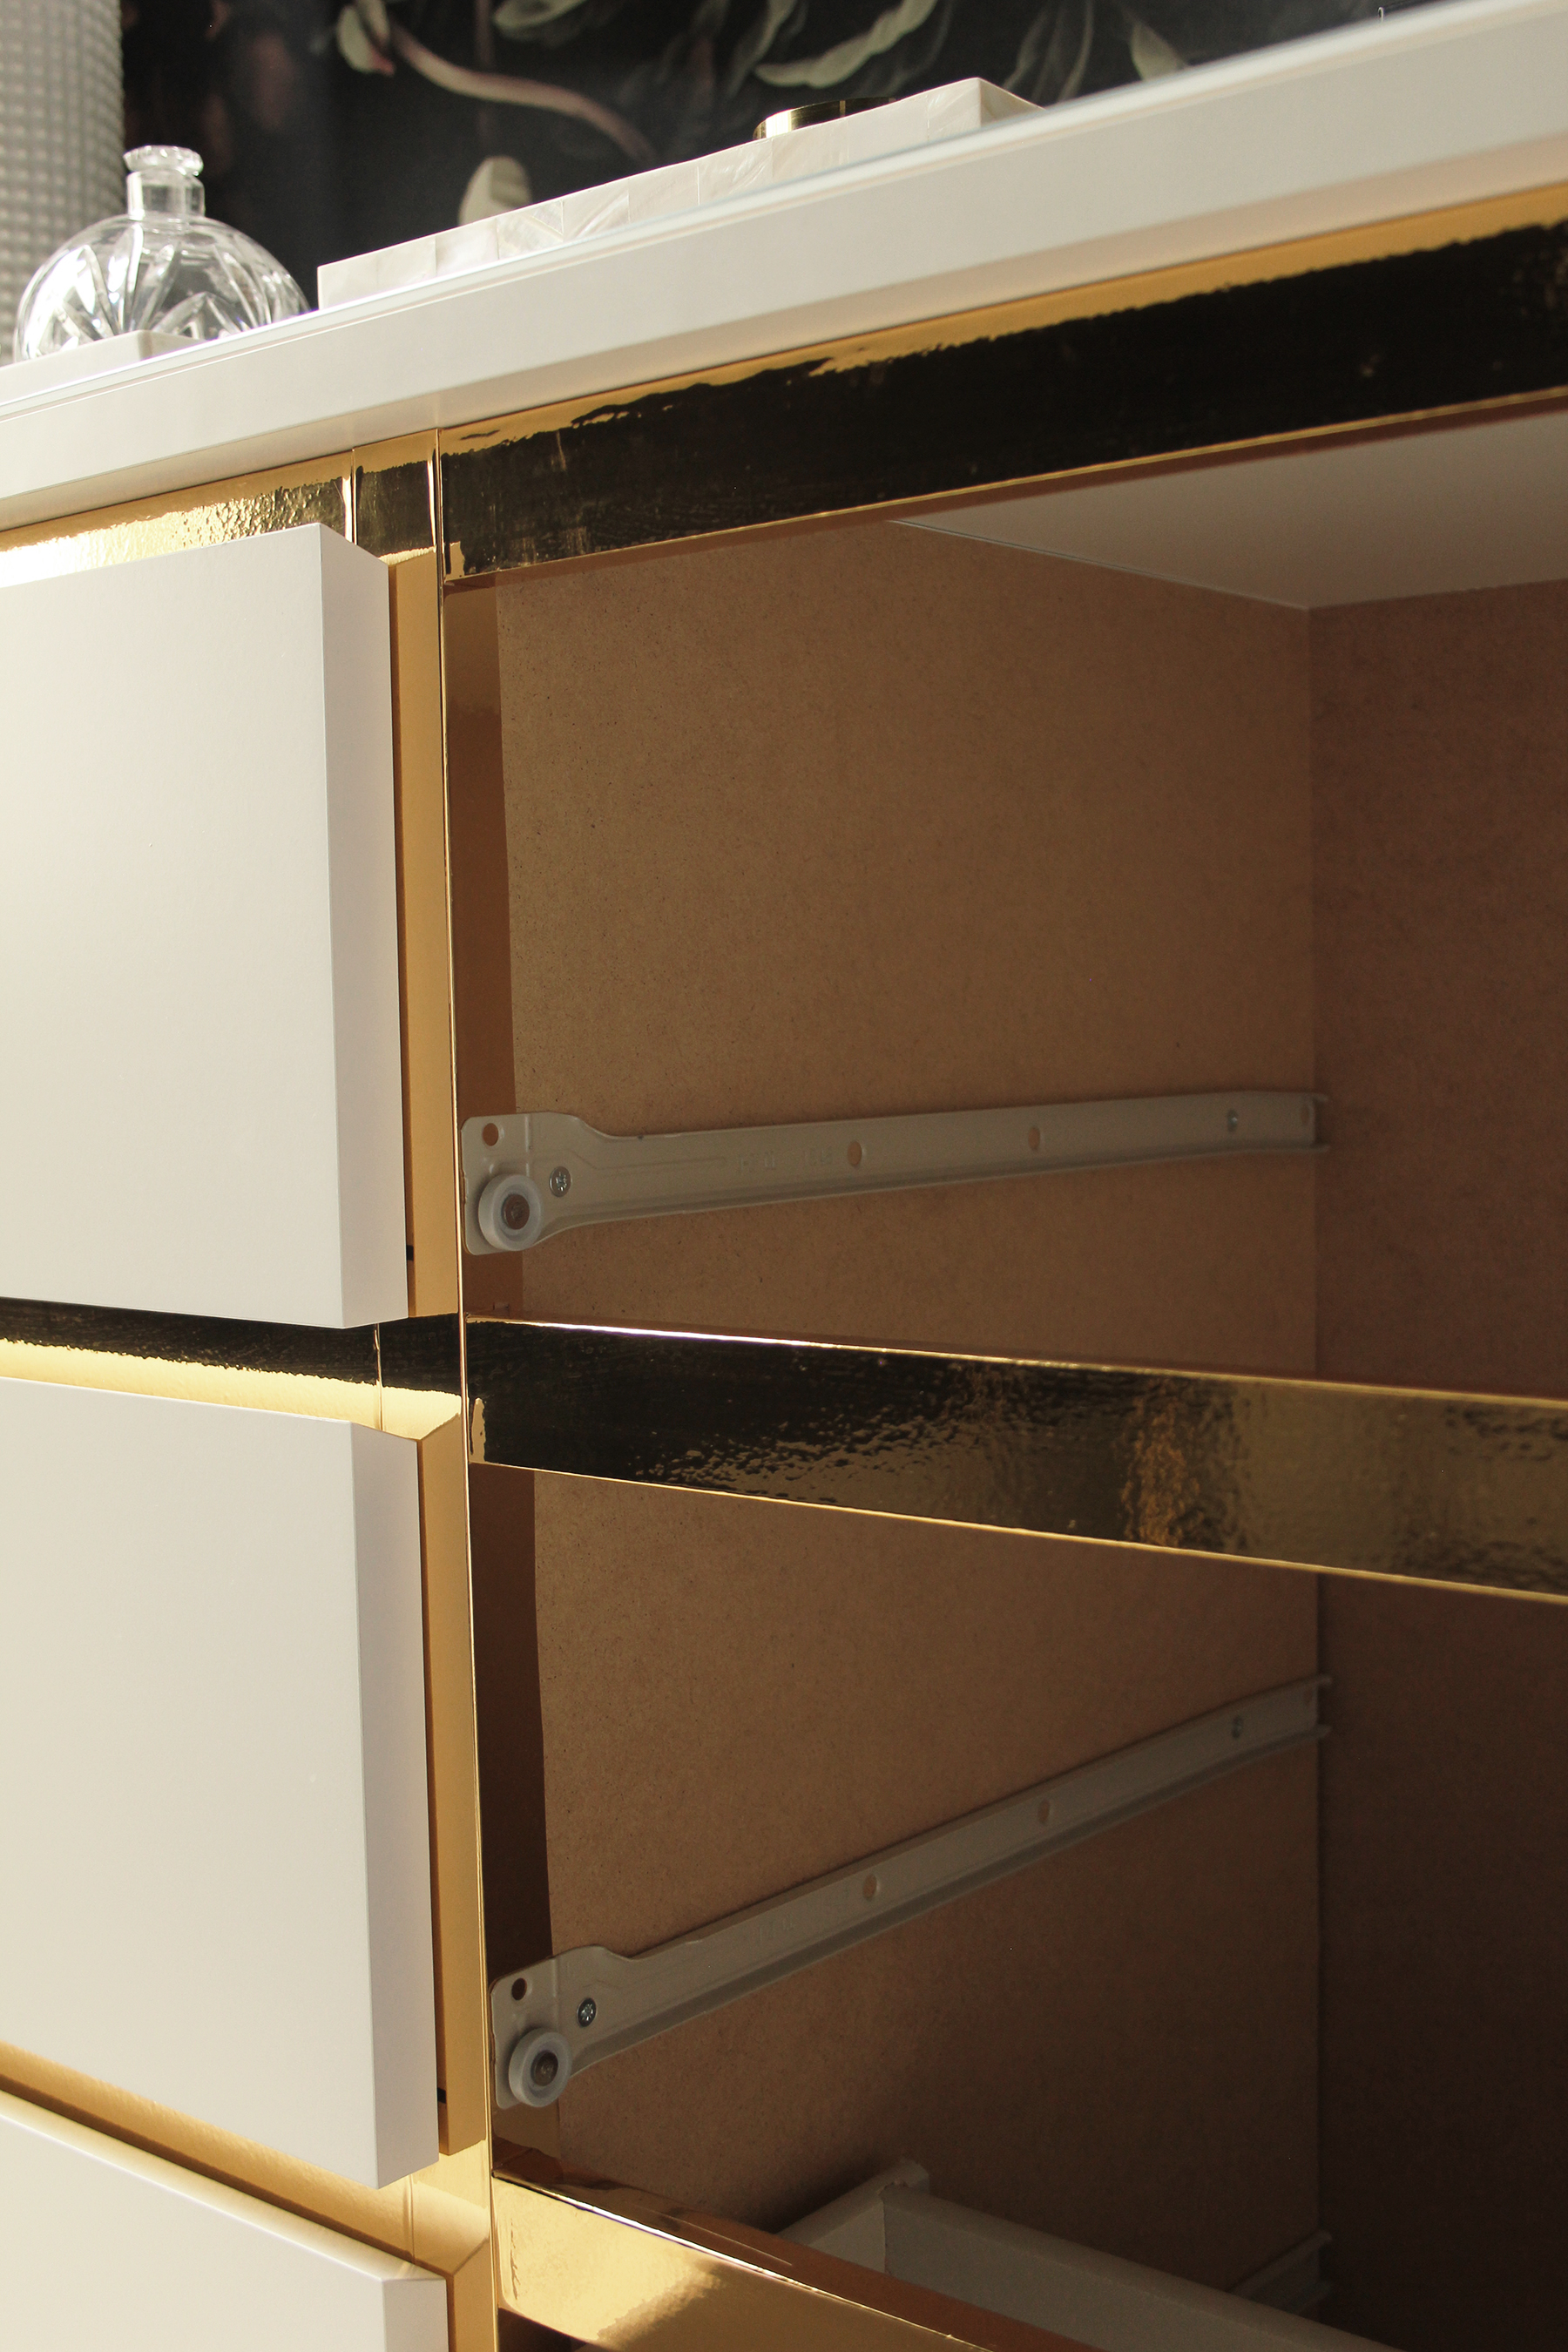 Preciously Me blog : DIY - Ikea Hack, Customize and Glamorize a Malm dresser with gold contact paper. Looks like a beautiful vintage style credenza